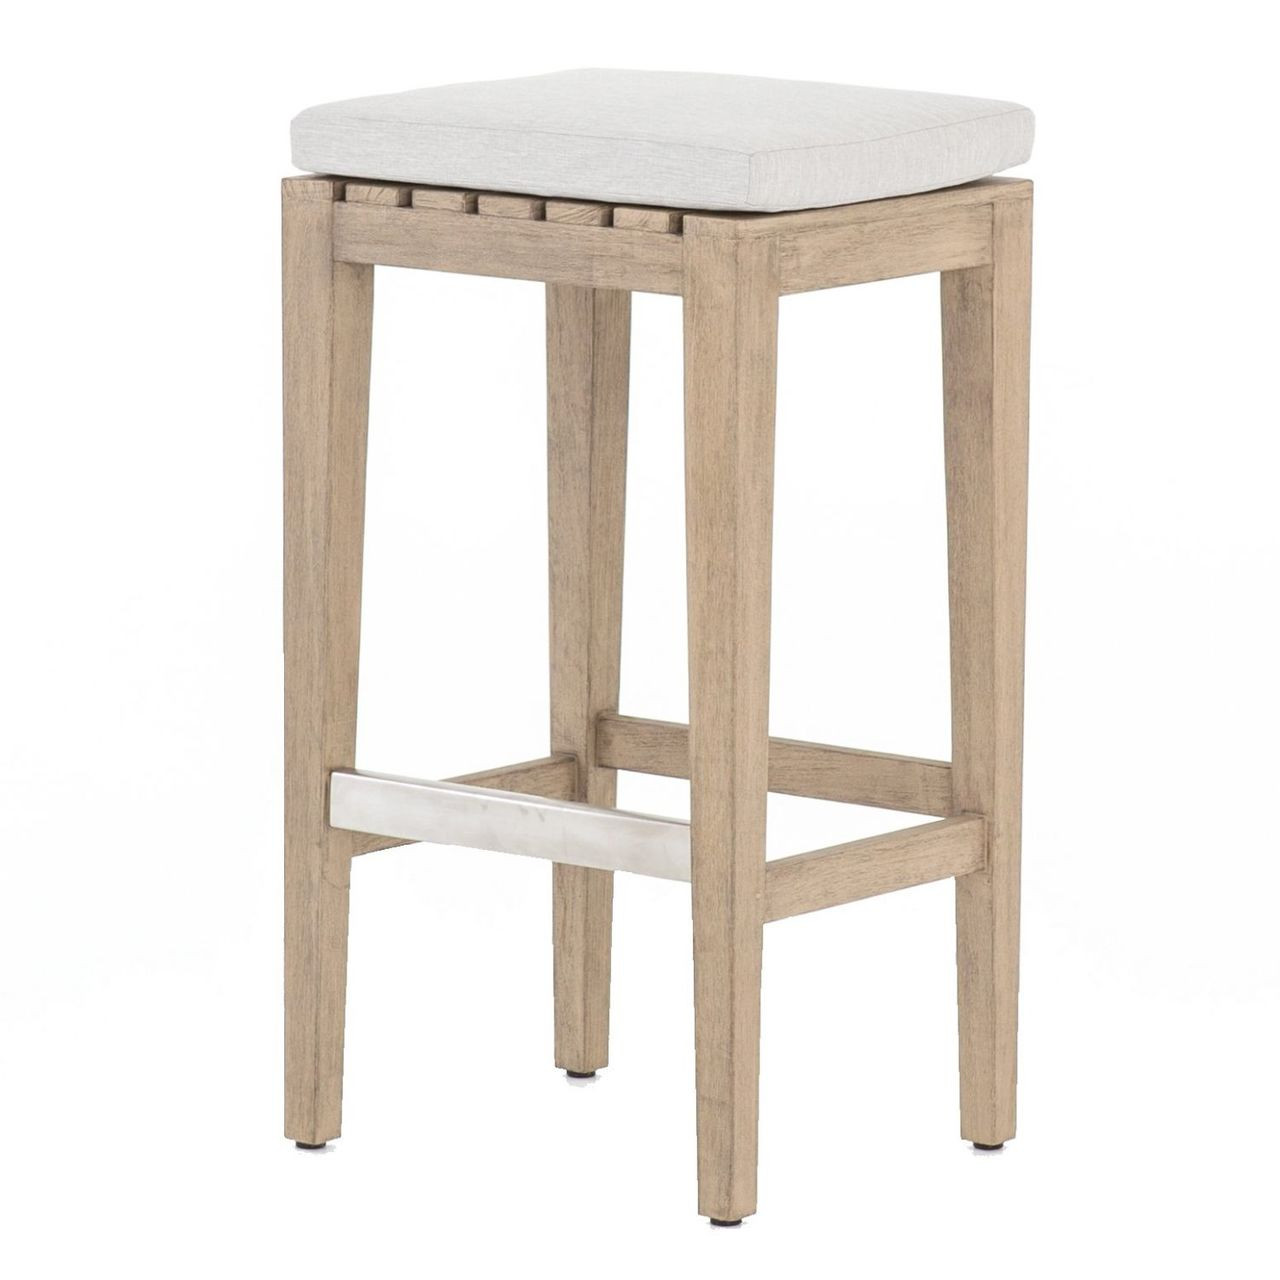 Swell Dale Natural Teak Outdoor Bar Stool Bralicious Painted Fabric Chair Ideas Braliciousco